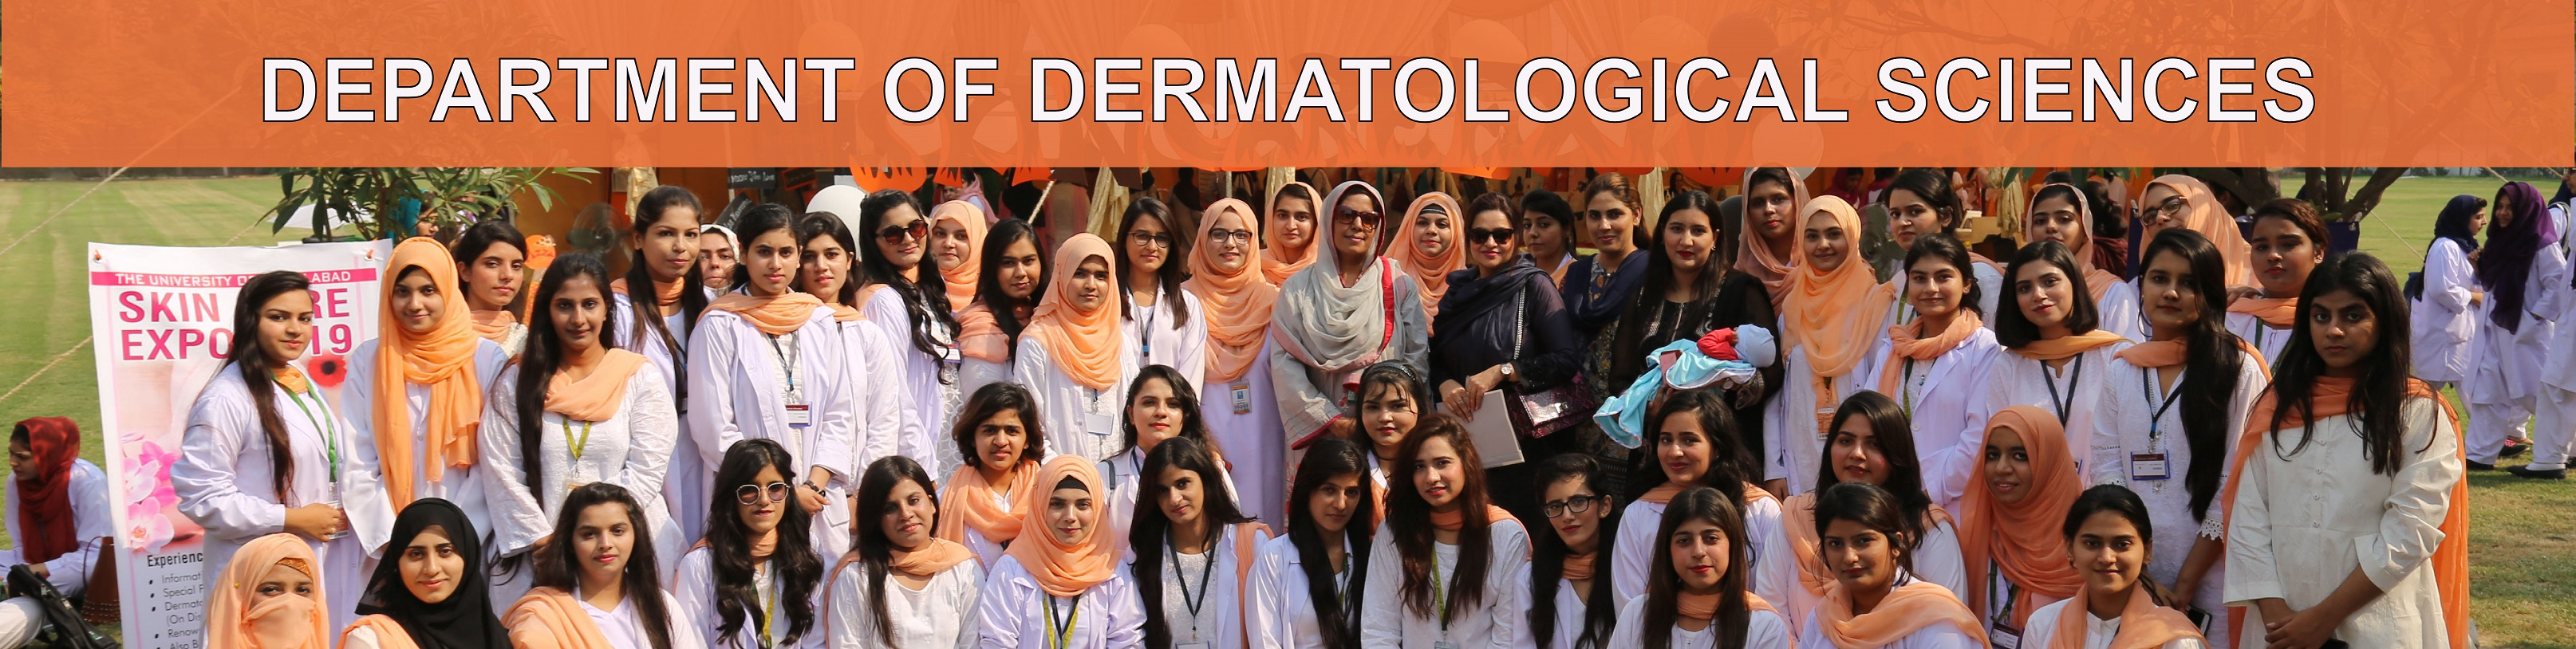 department-of-dermatological-sciences